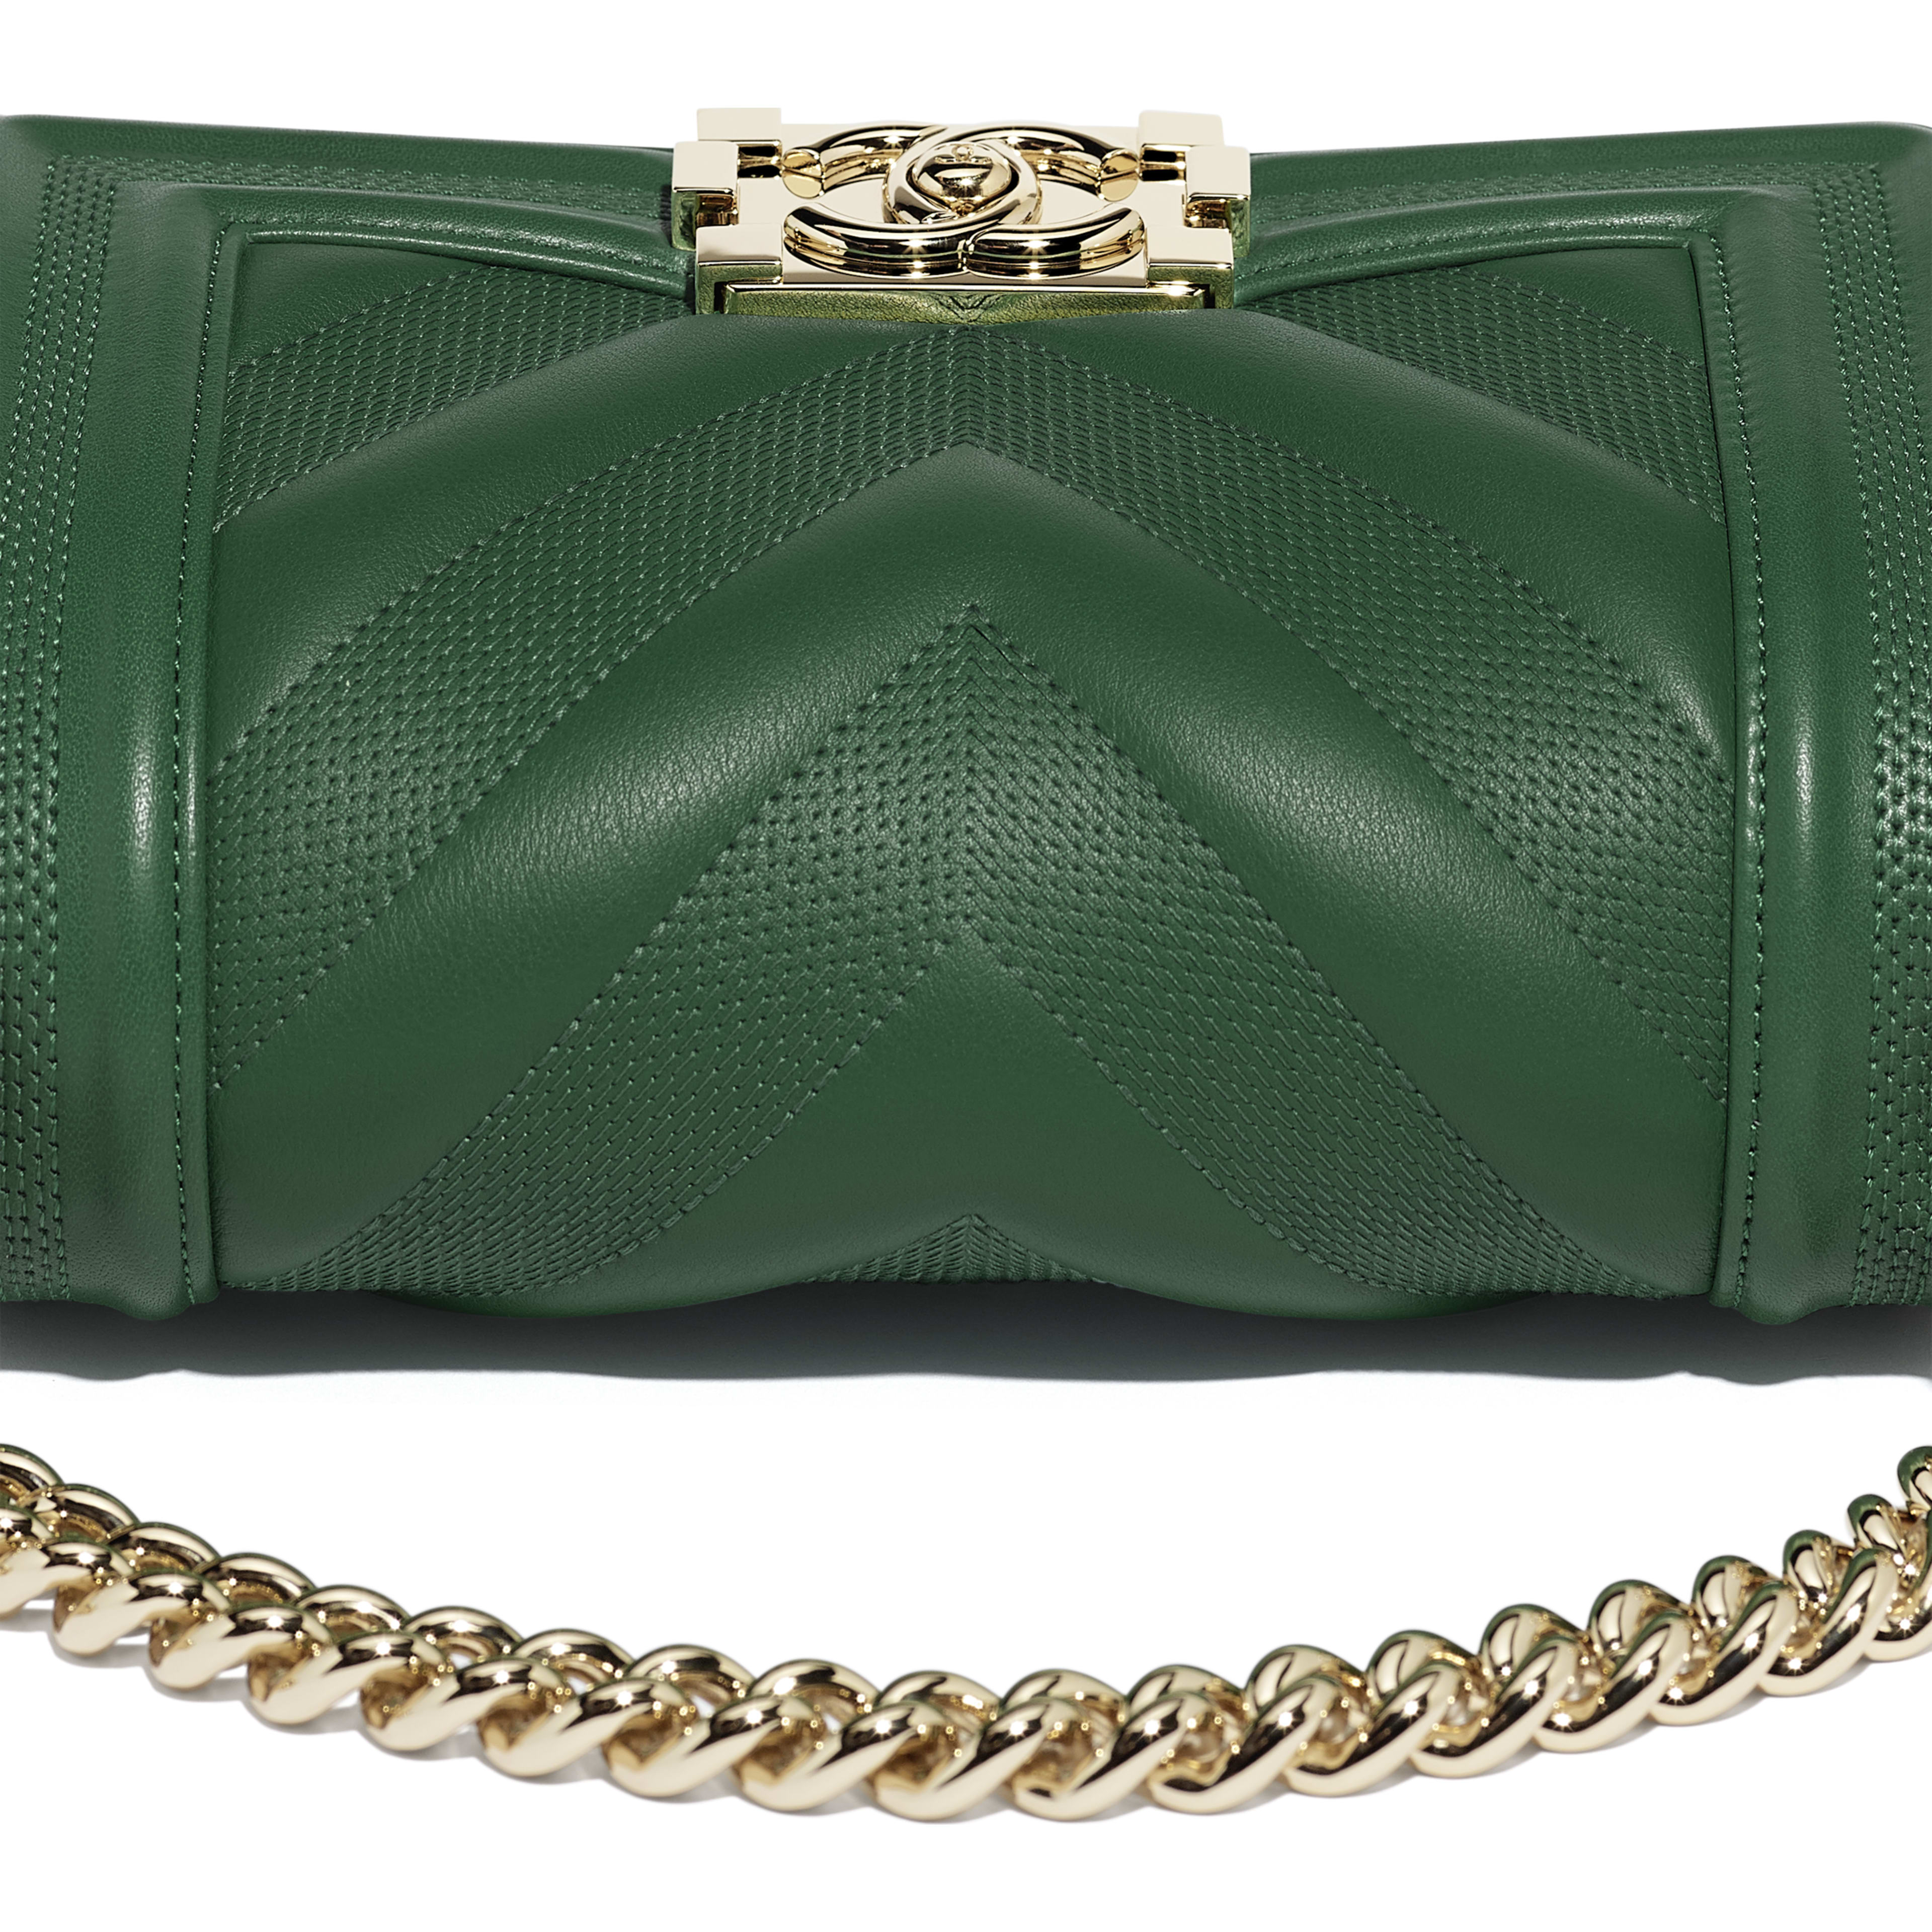 Small BOY CHANEL Handbag - Green - Calfskin & Gold-Tone Metal - Extra view - see full sized version